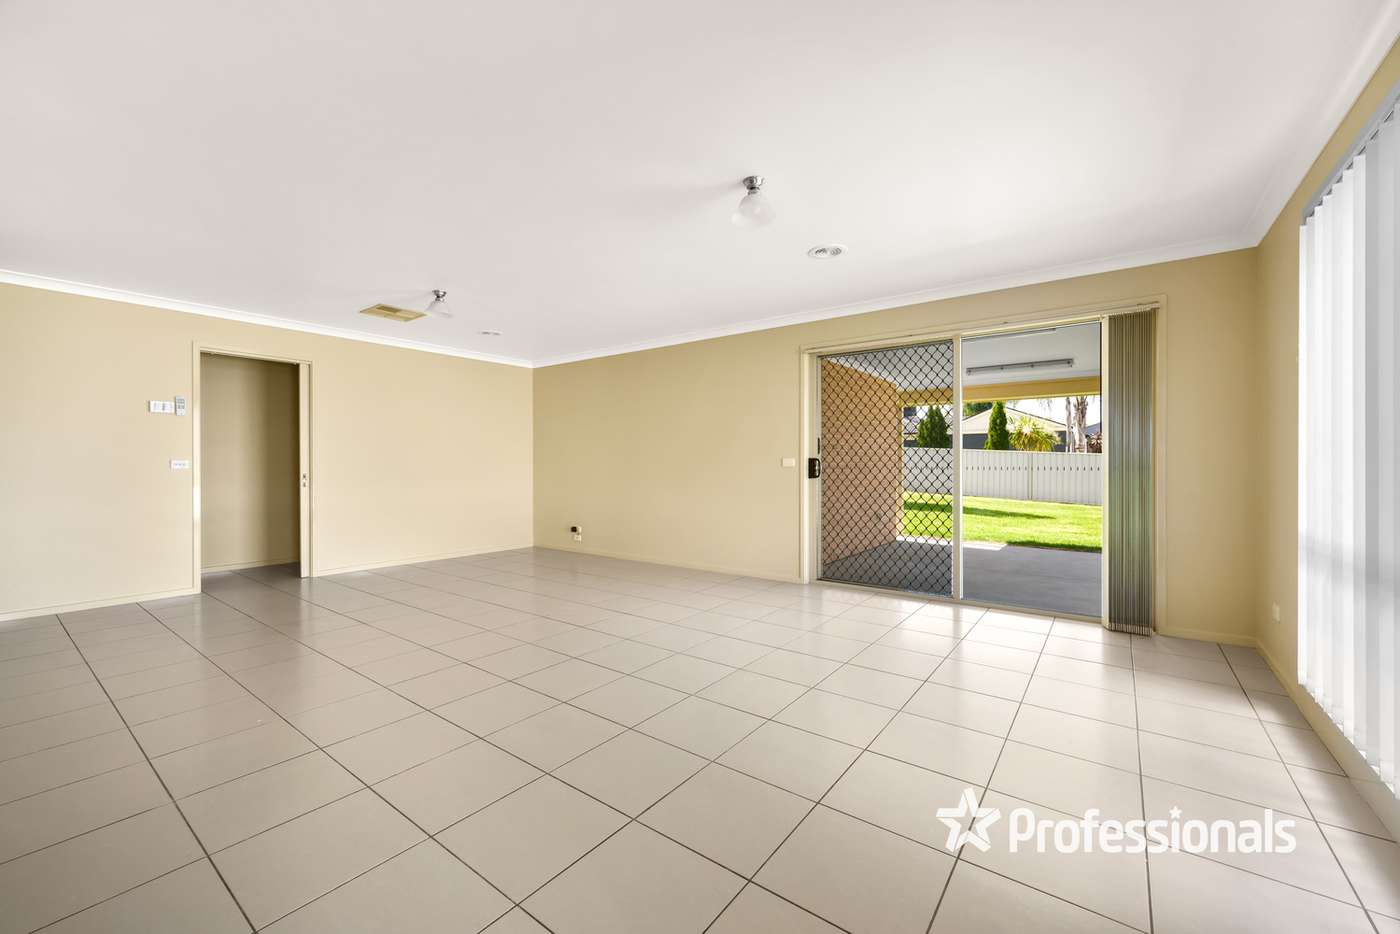 Fifth view of Homely house listing, 10 Millar Court, Wodonga VIC 3690